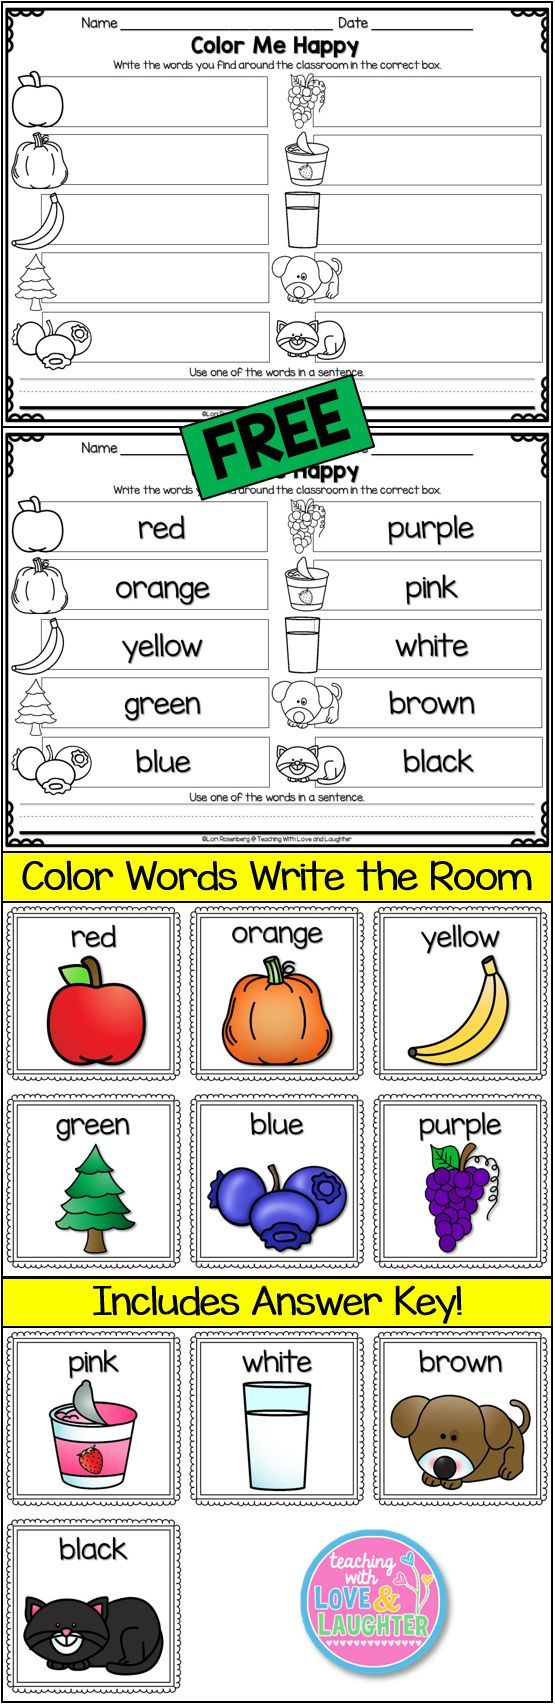 418 best color activities images on pinterest color activities